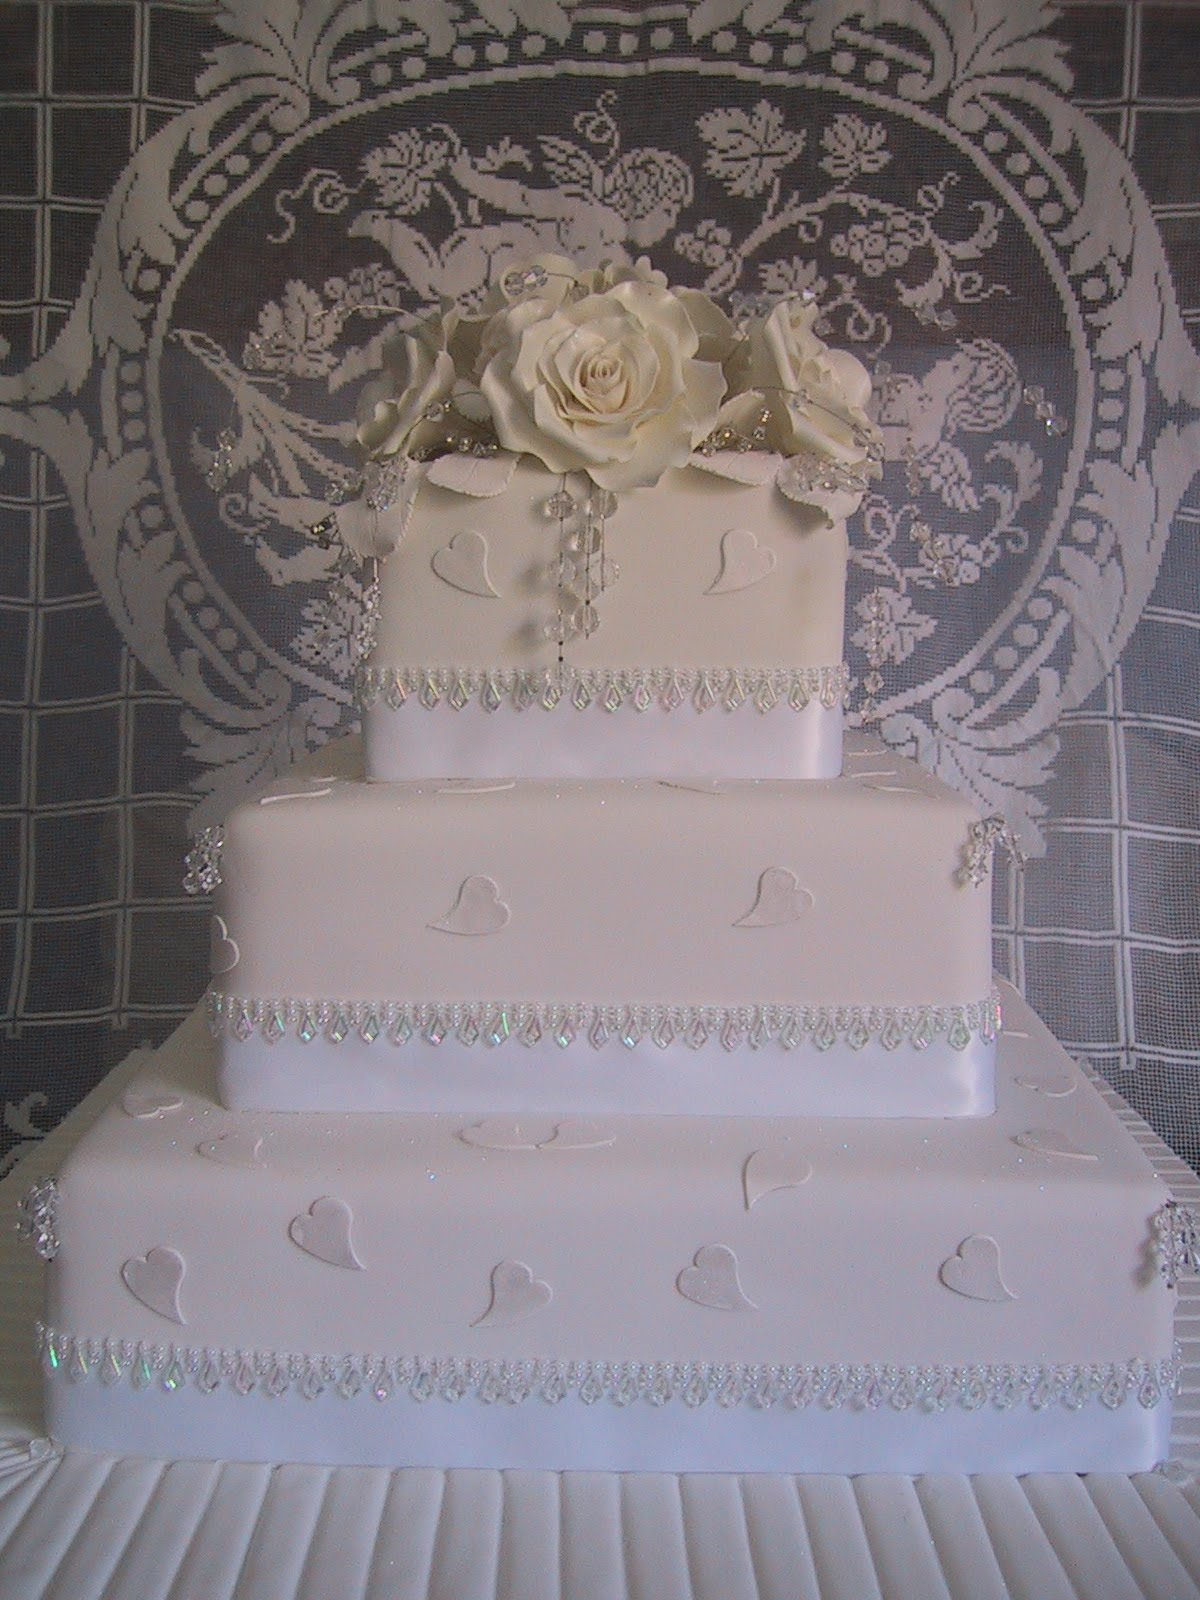 My wedding cake was a typical